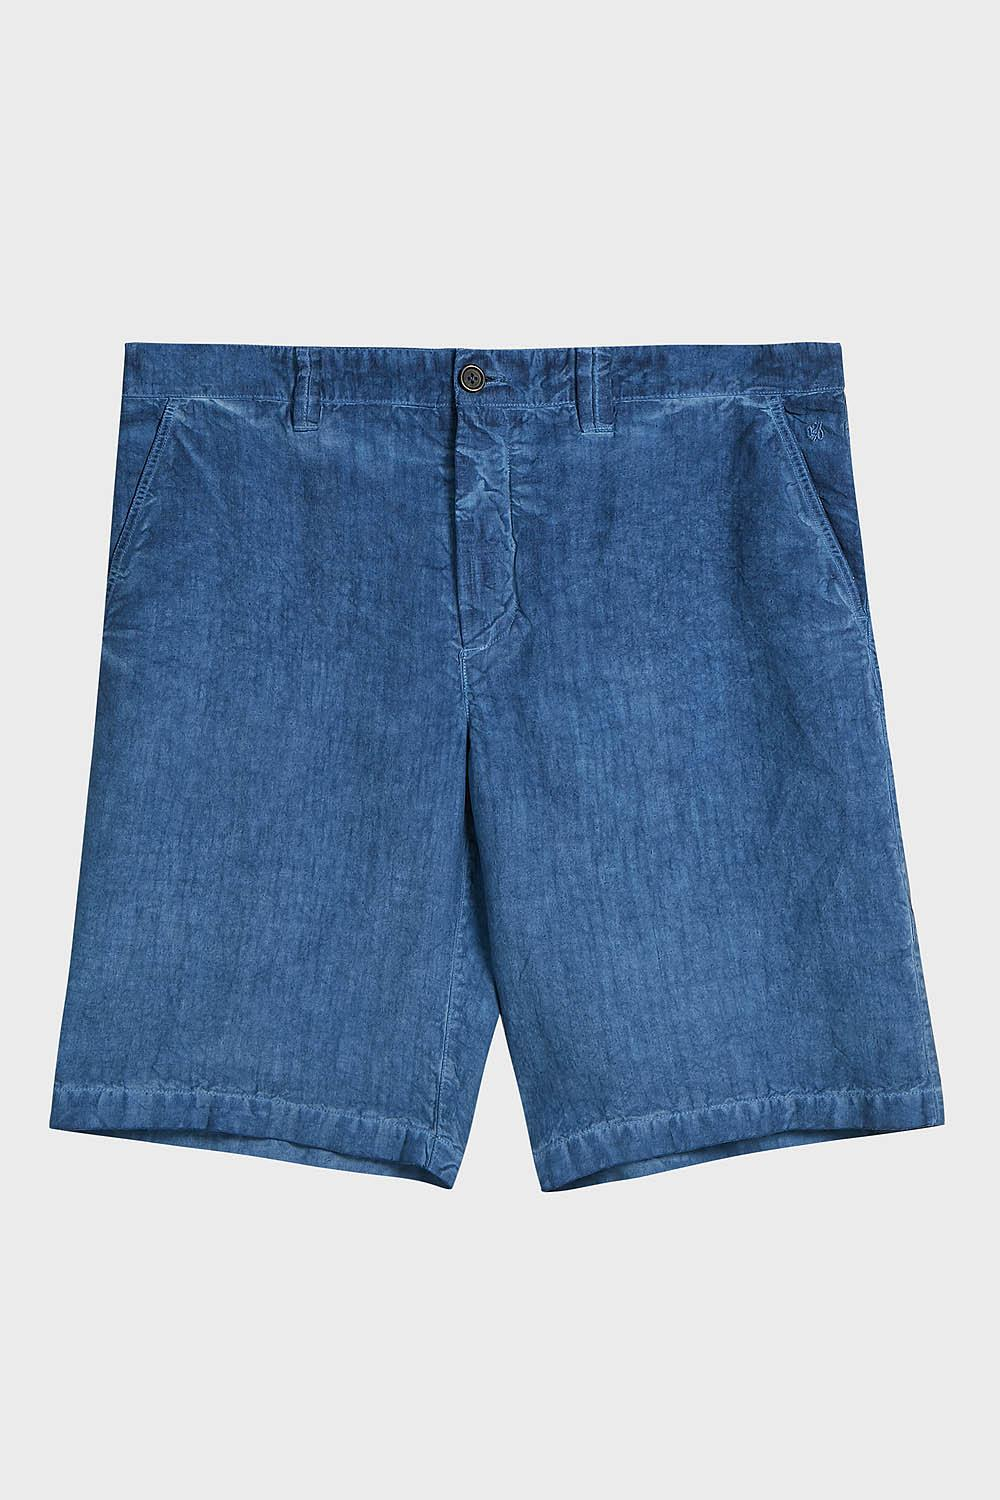 120% LINO LINEN SHORTS, SIZE IT52, MEN, BLUE